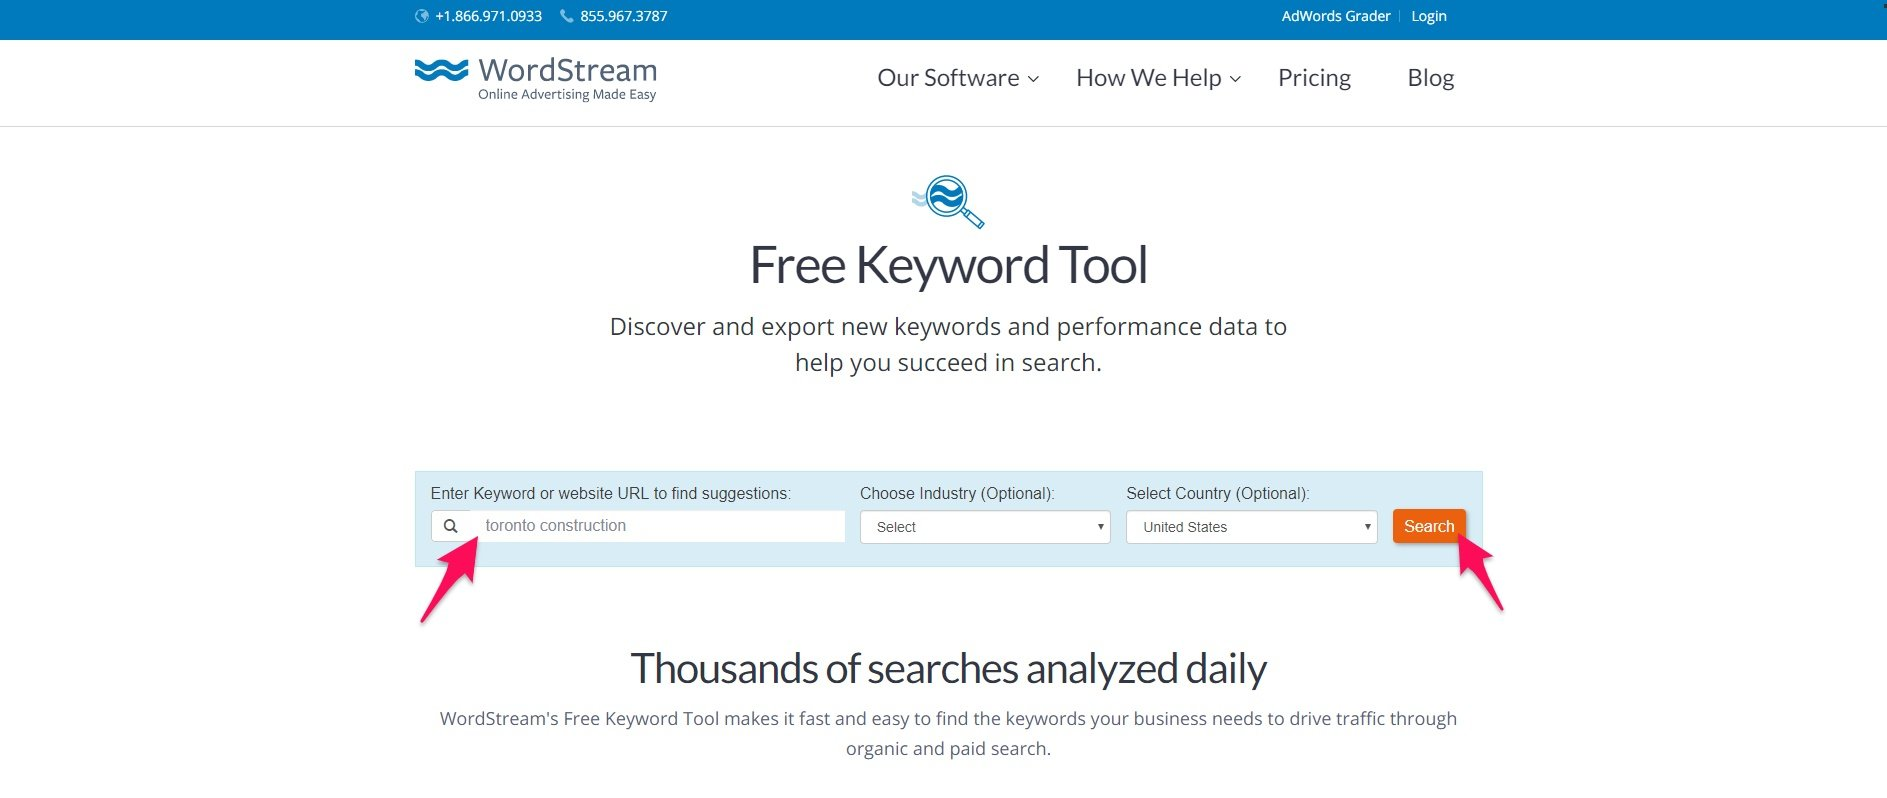 Using WordStream